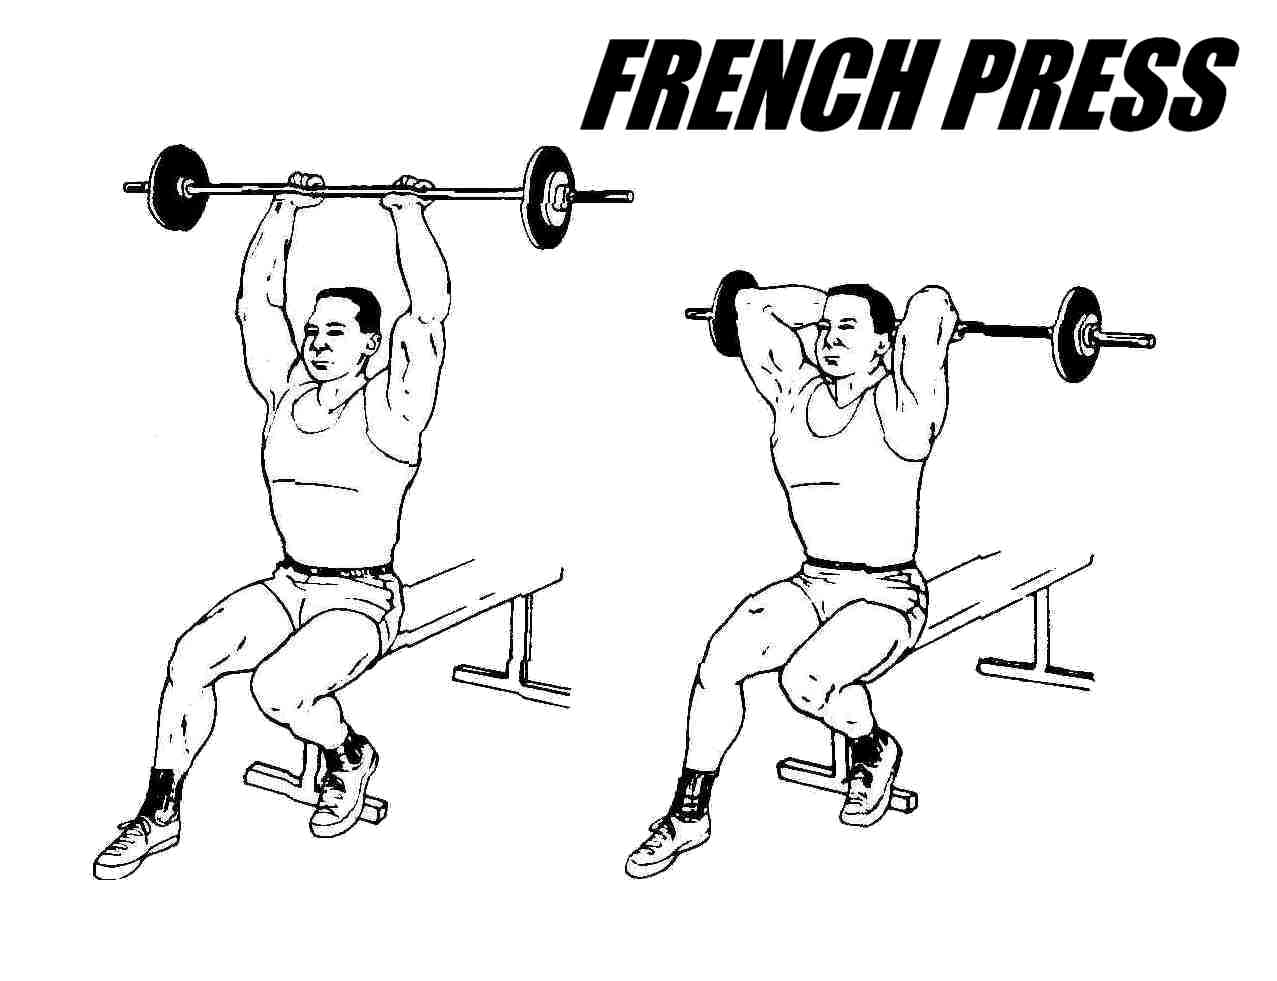 French Press, Barbell French Press Triceps Exercise